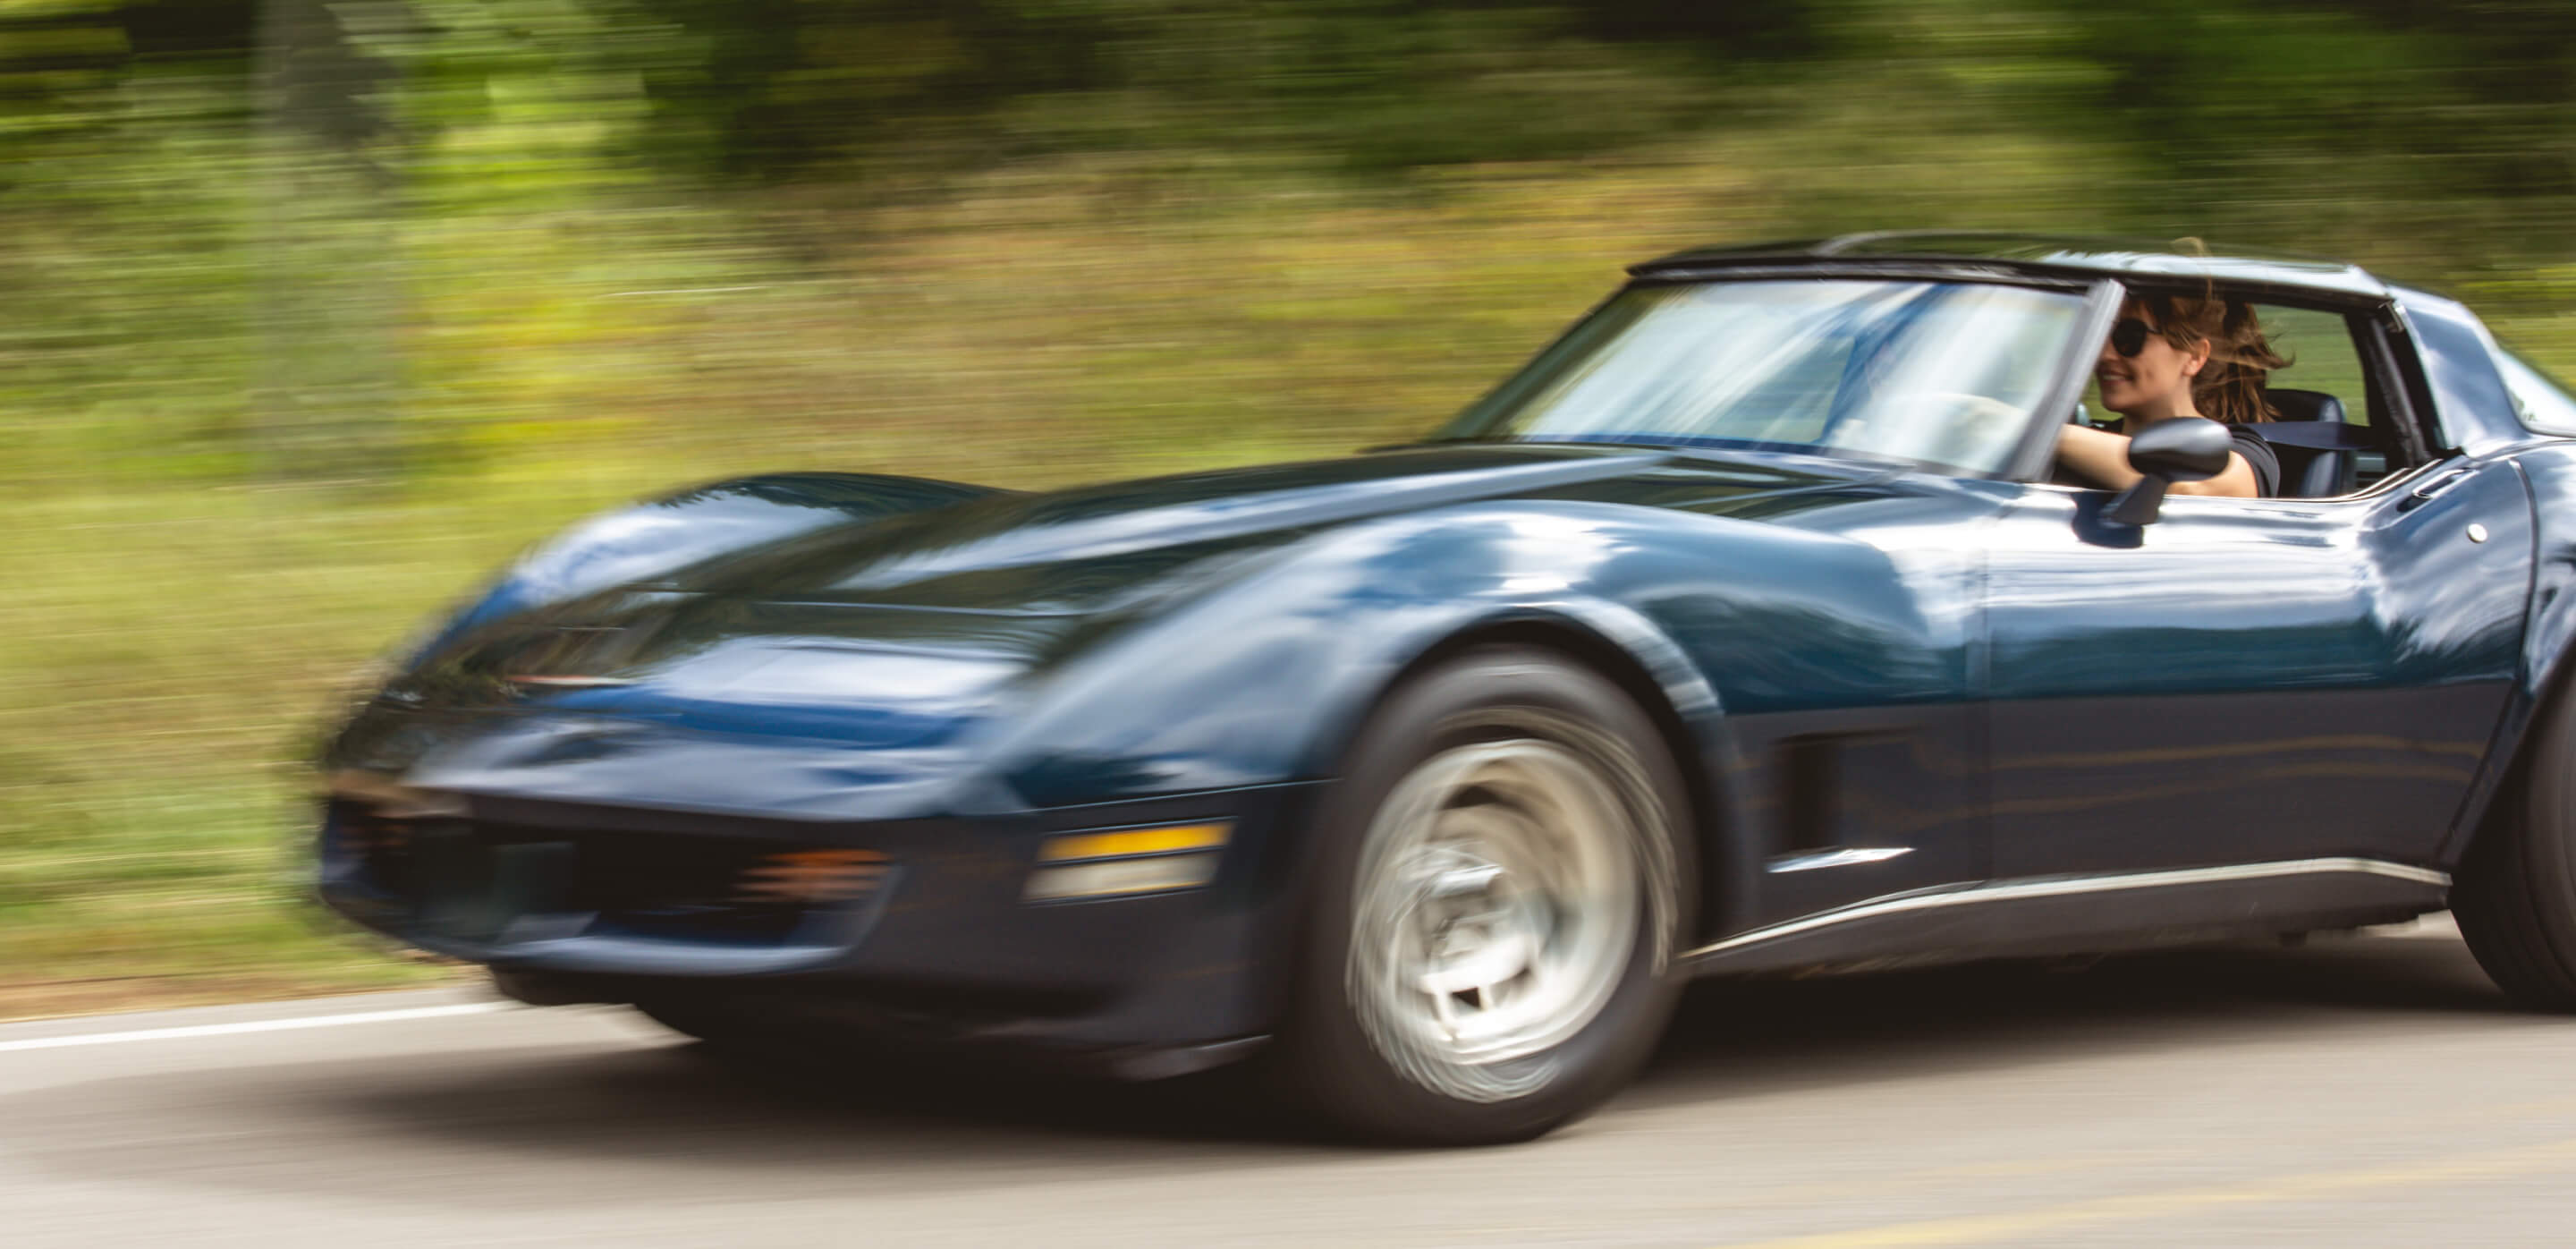 A black collector Corvette being driven down a country road by a woman wearing sunglasses.